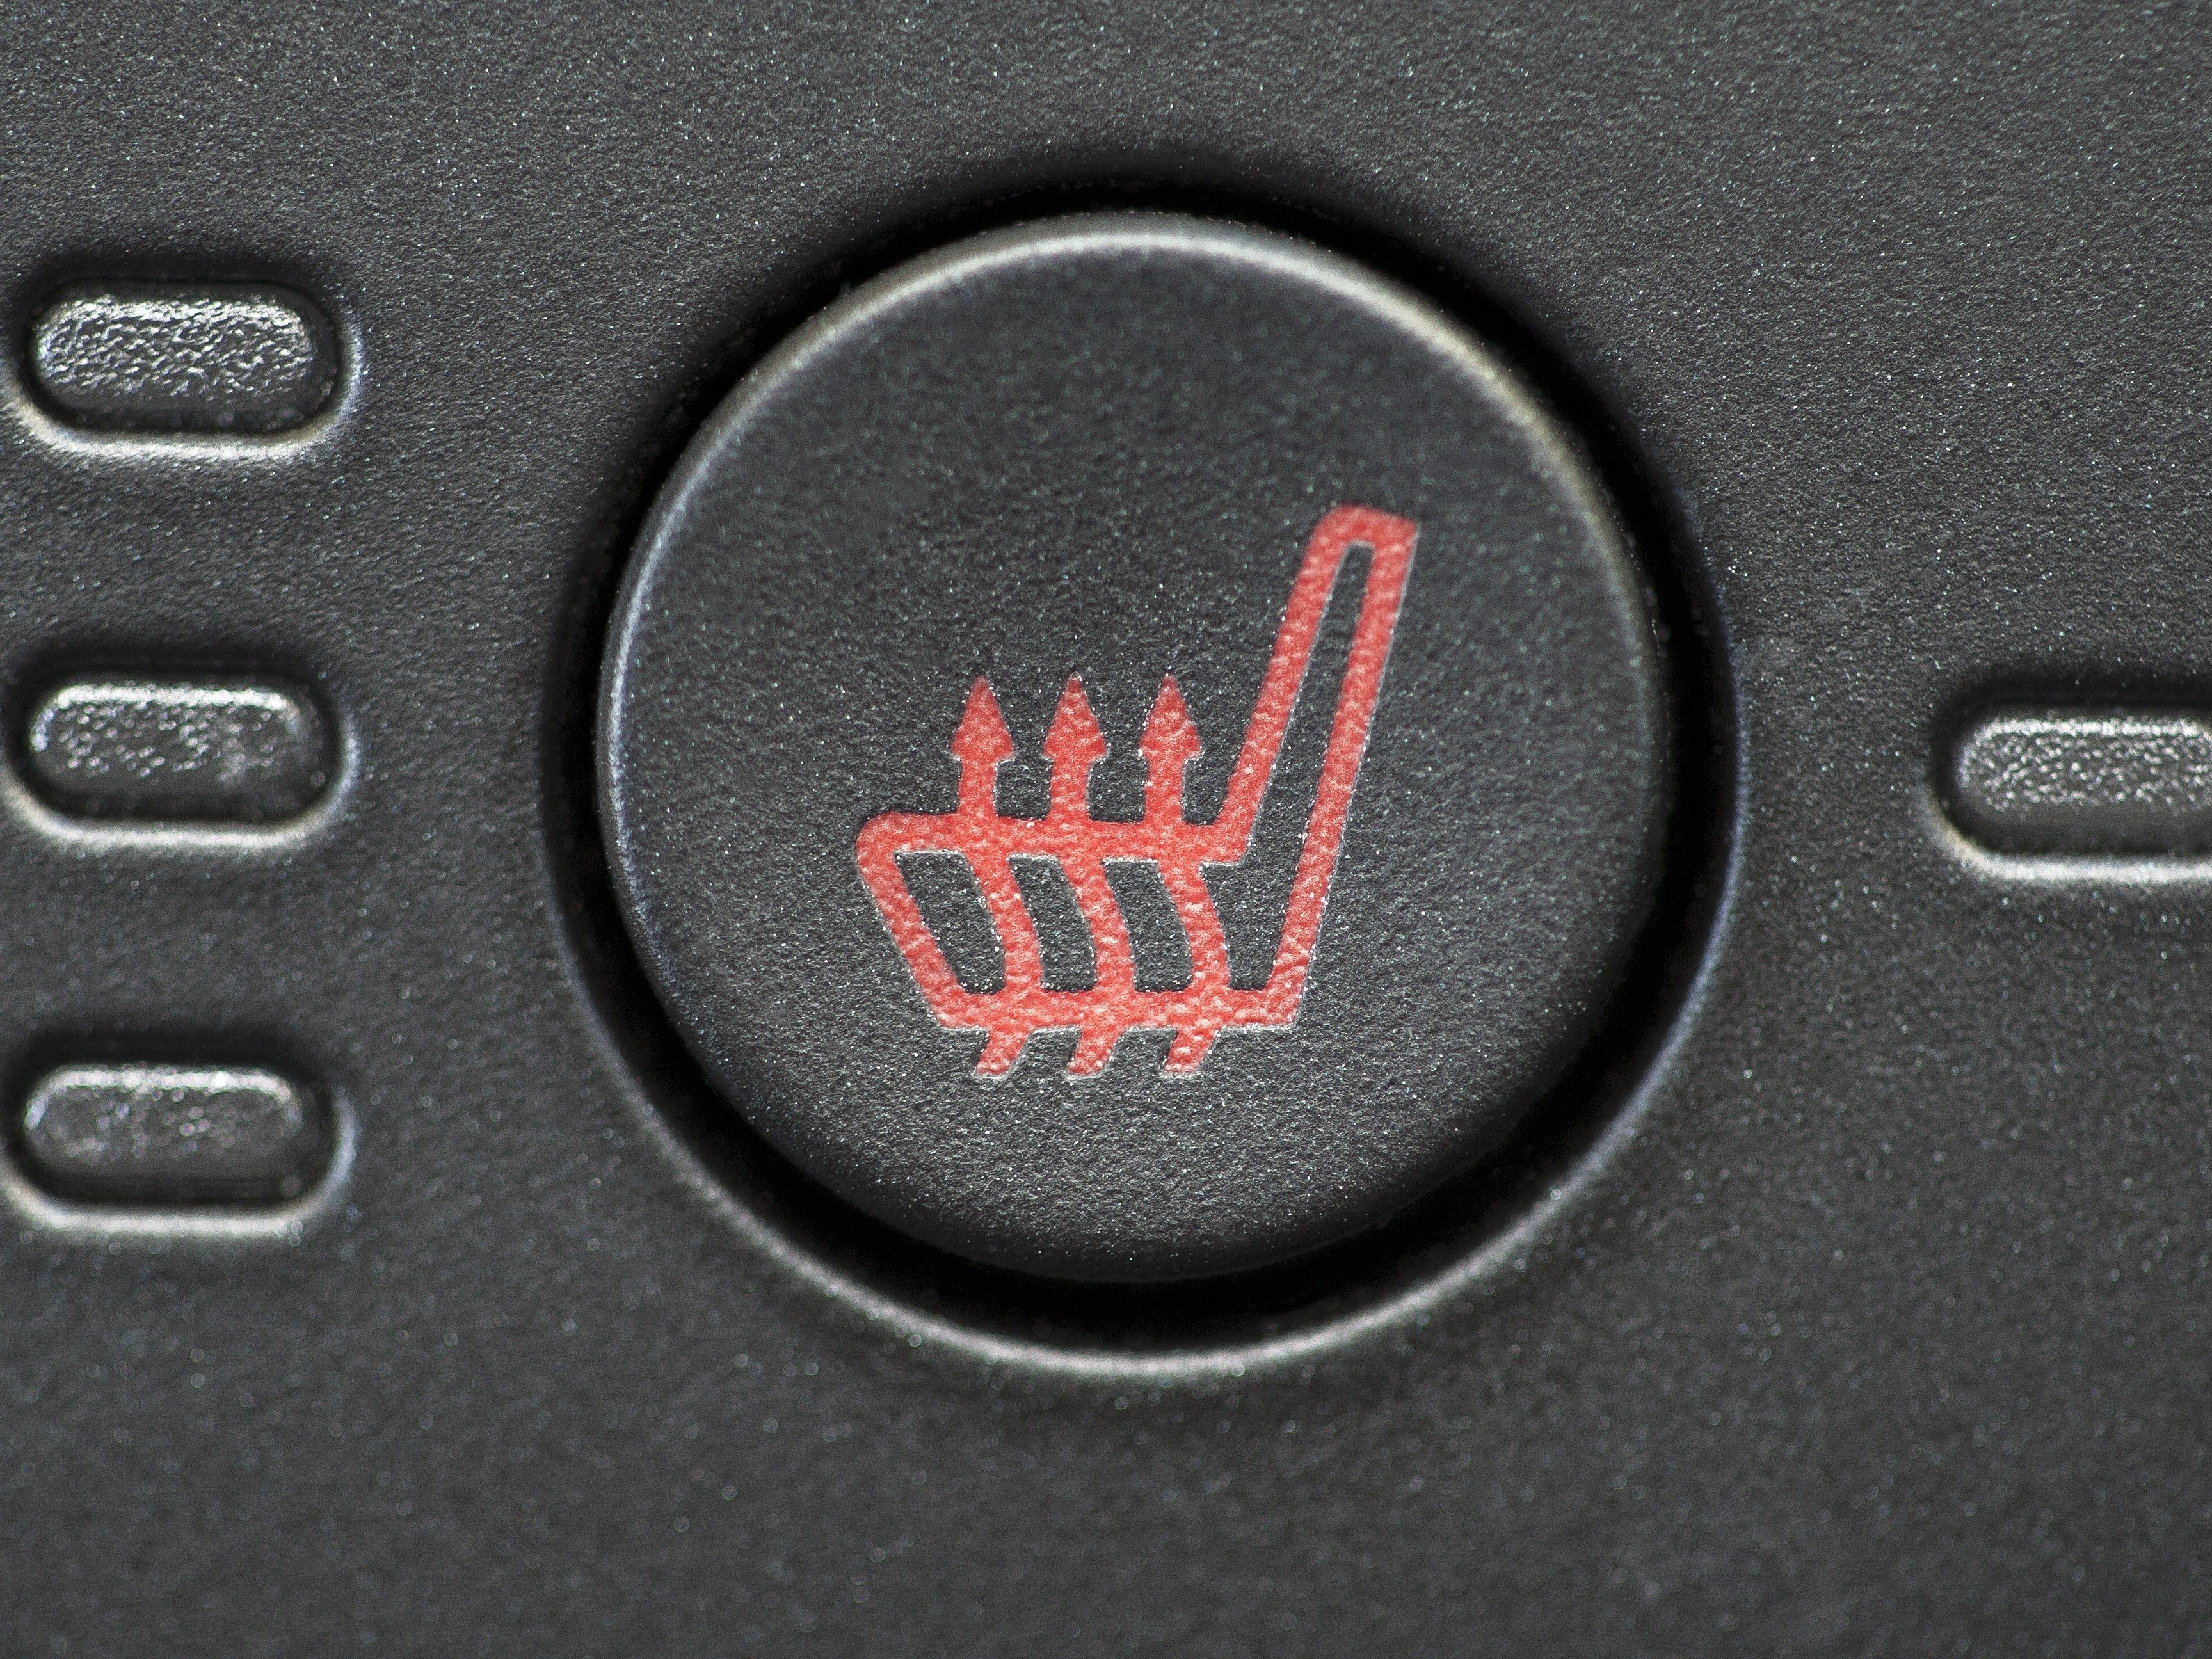 4. Heated Car Seat Covers